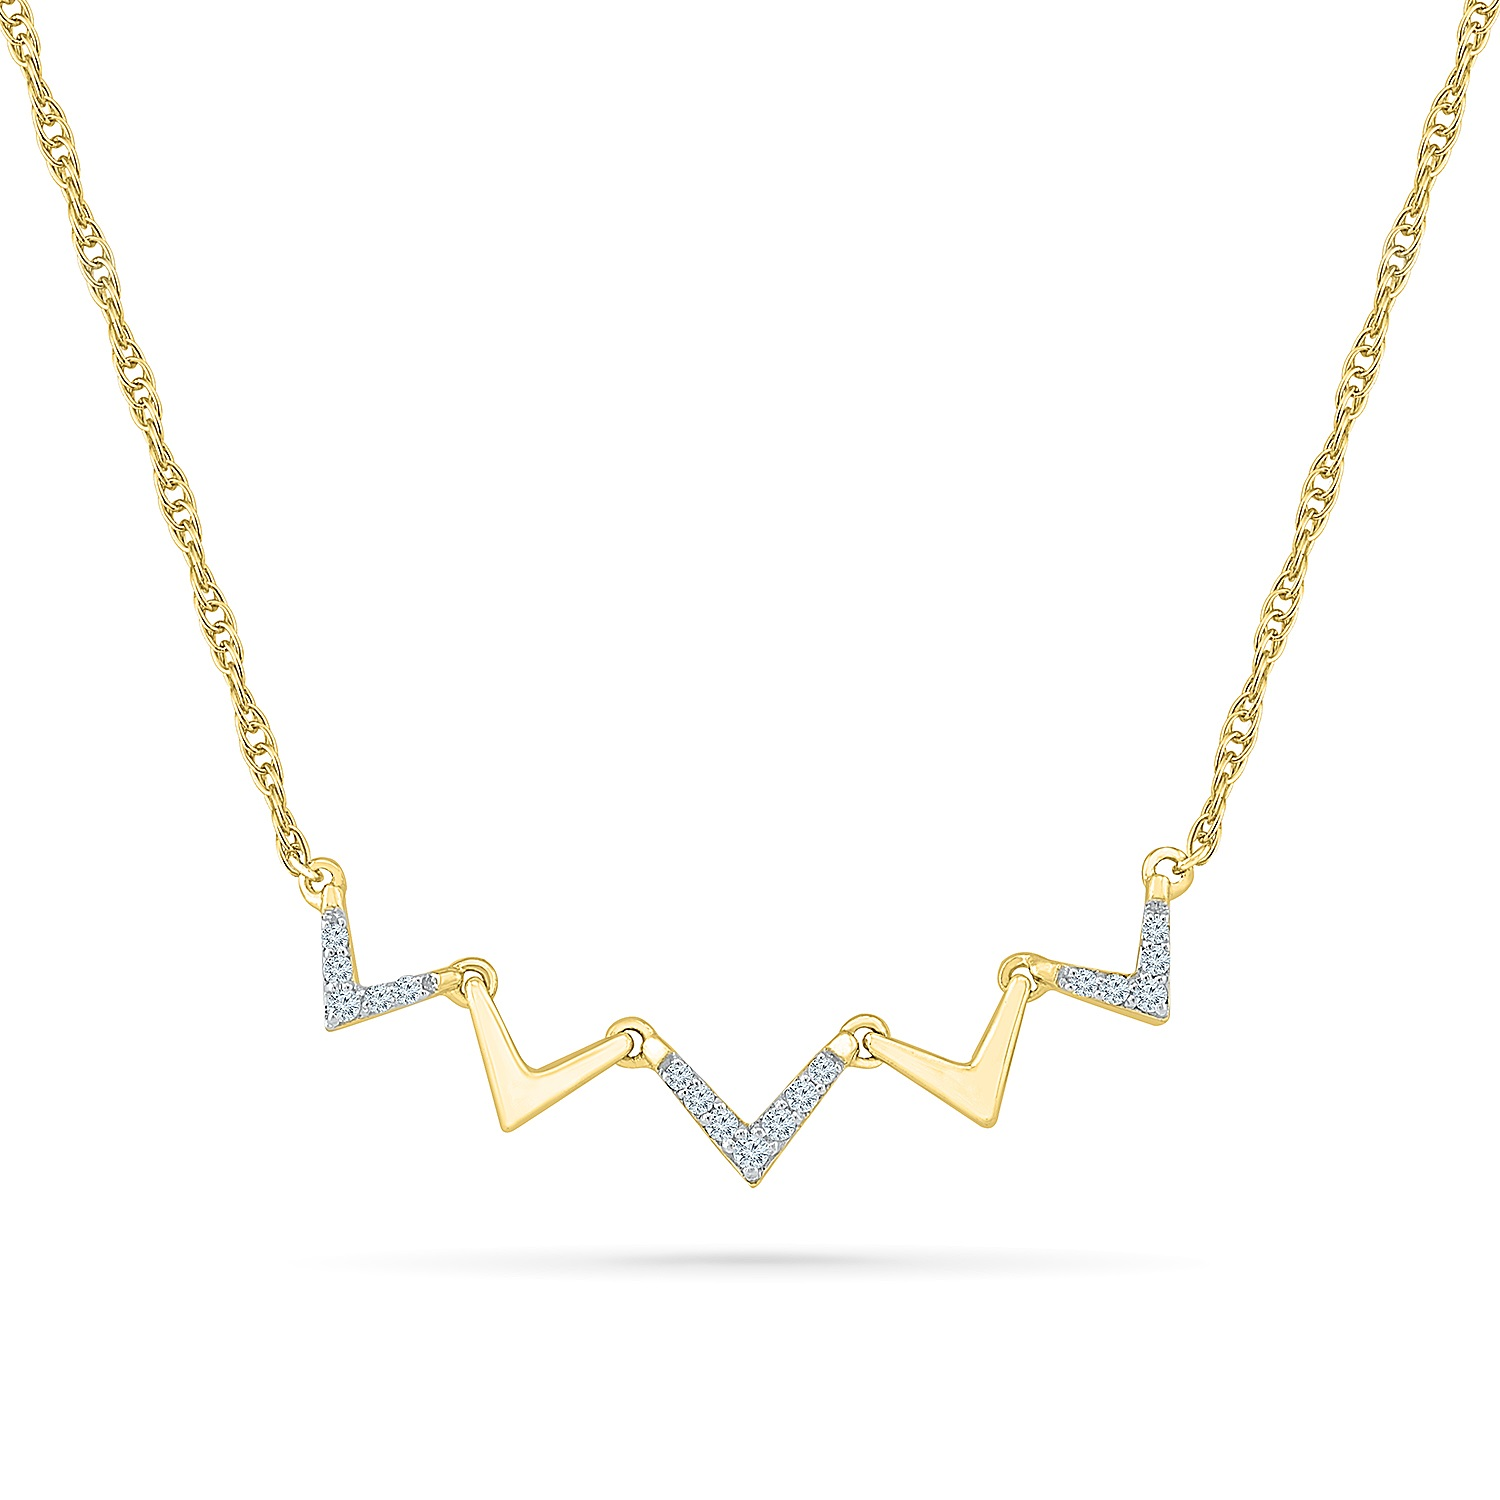 Necklace for woman - 10K yellow gold & Diamonds T.W. 0.12 Carat